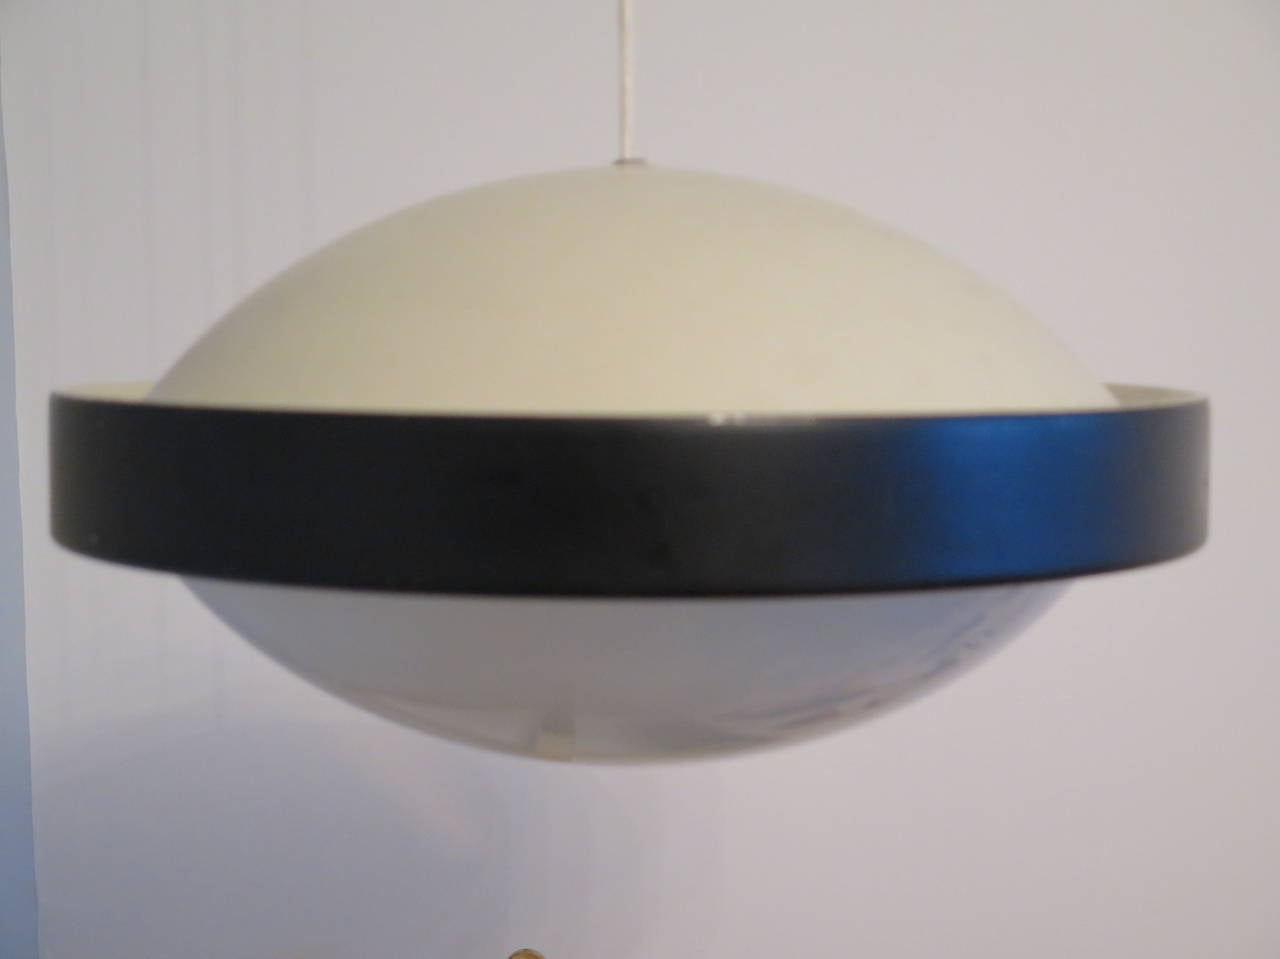 Wall Extension Lamps : Stilnovo Wall Lamp with Extension, circa 1960s For Sale at 1stdibs